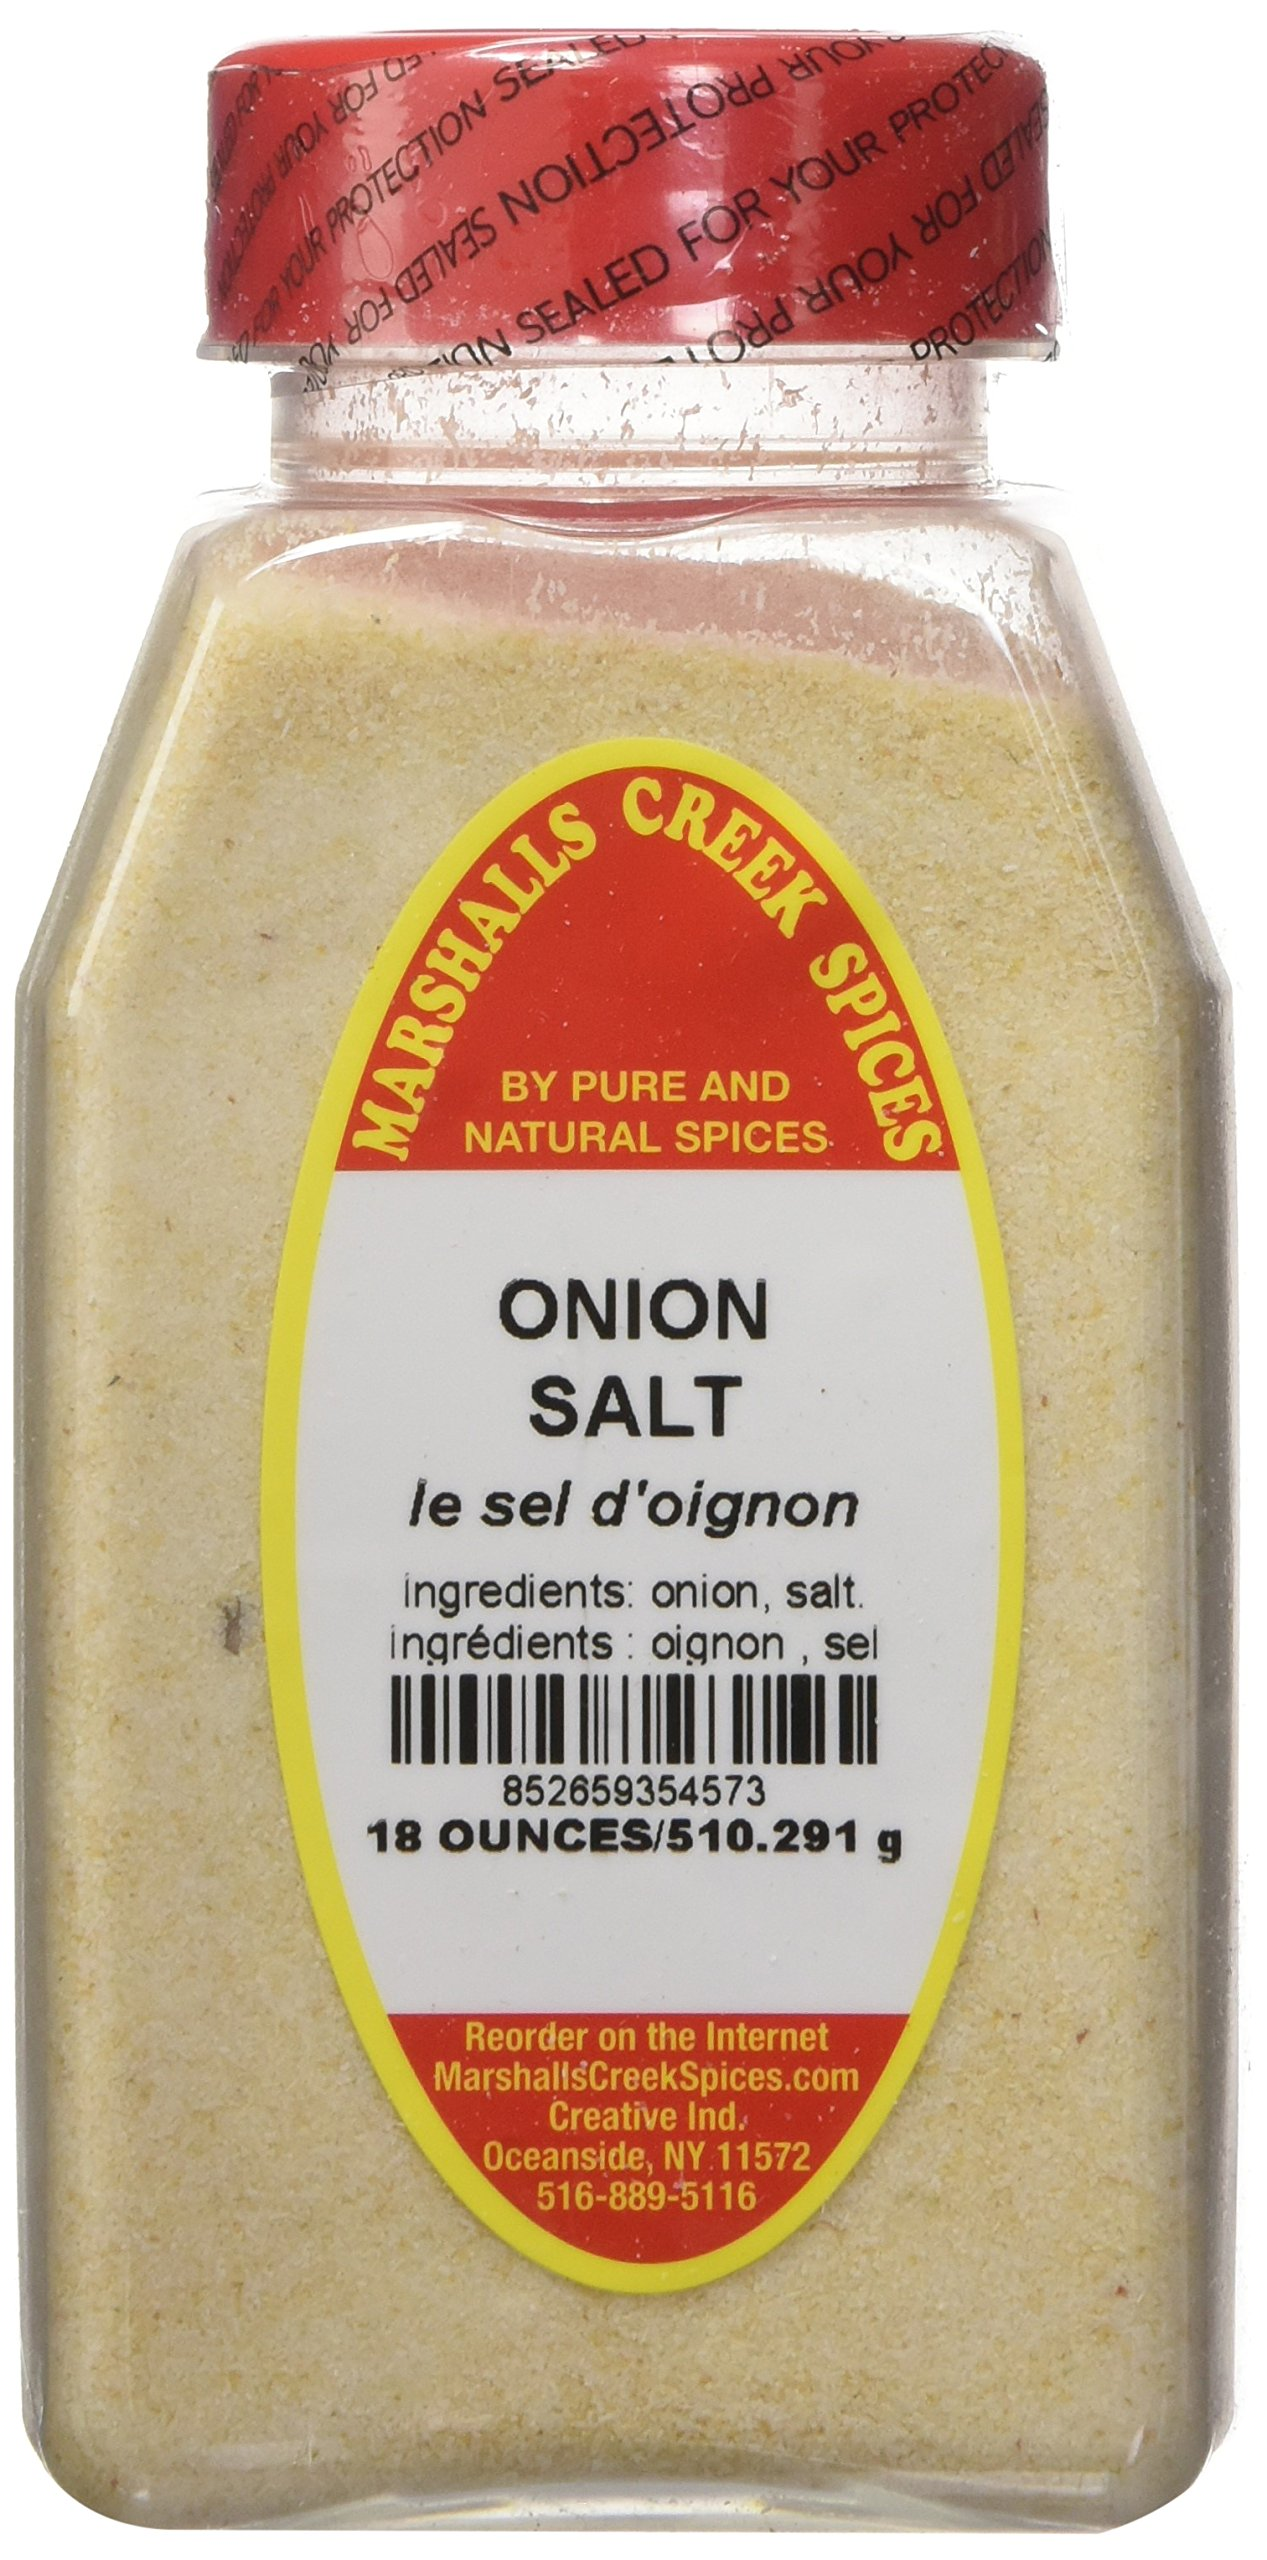 Marshalls Creek Spices Onion Salt, 18 Ounce